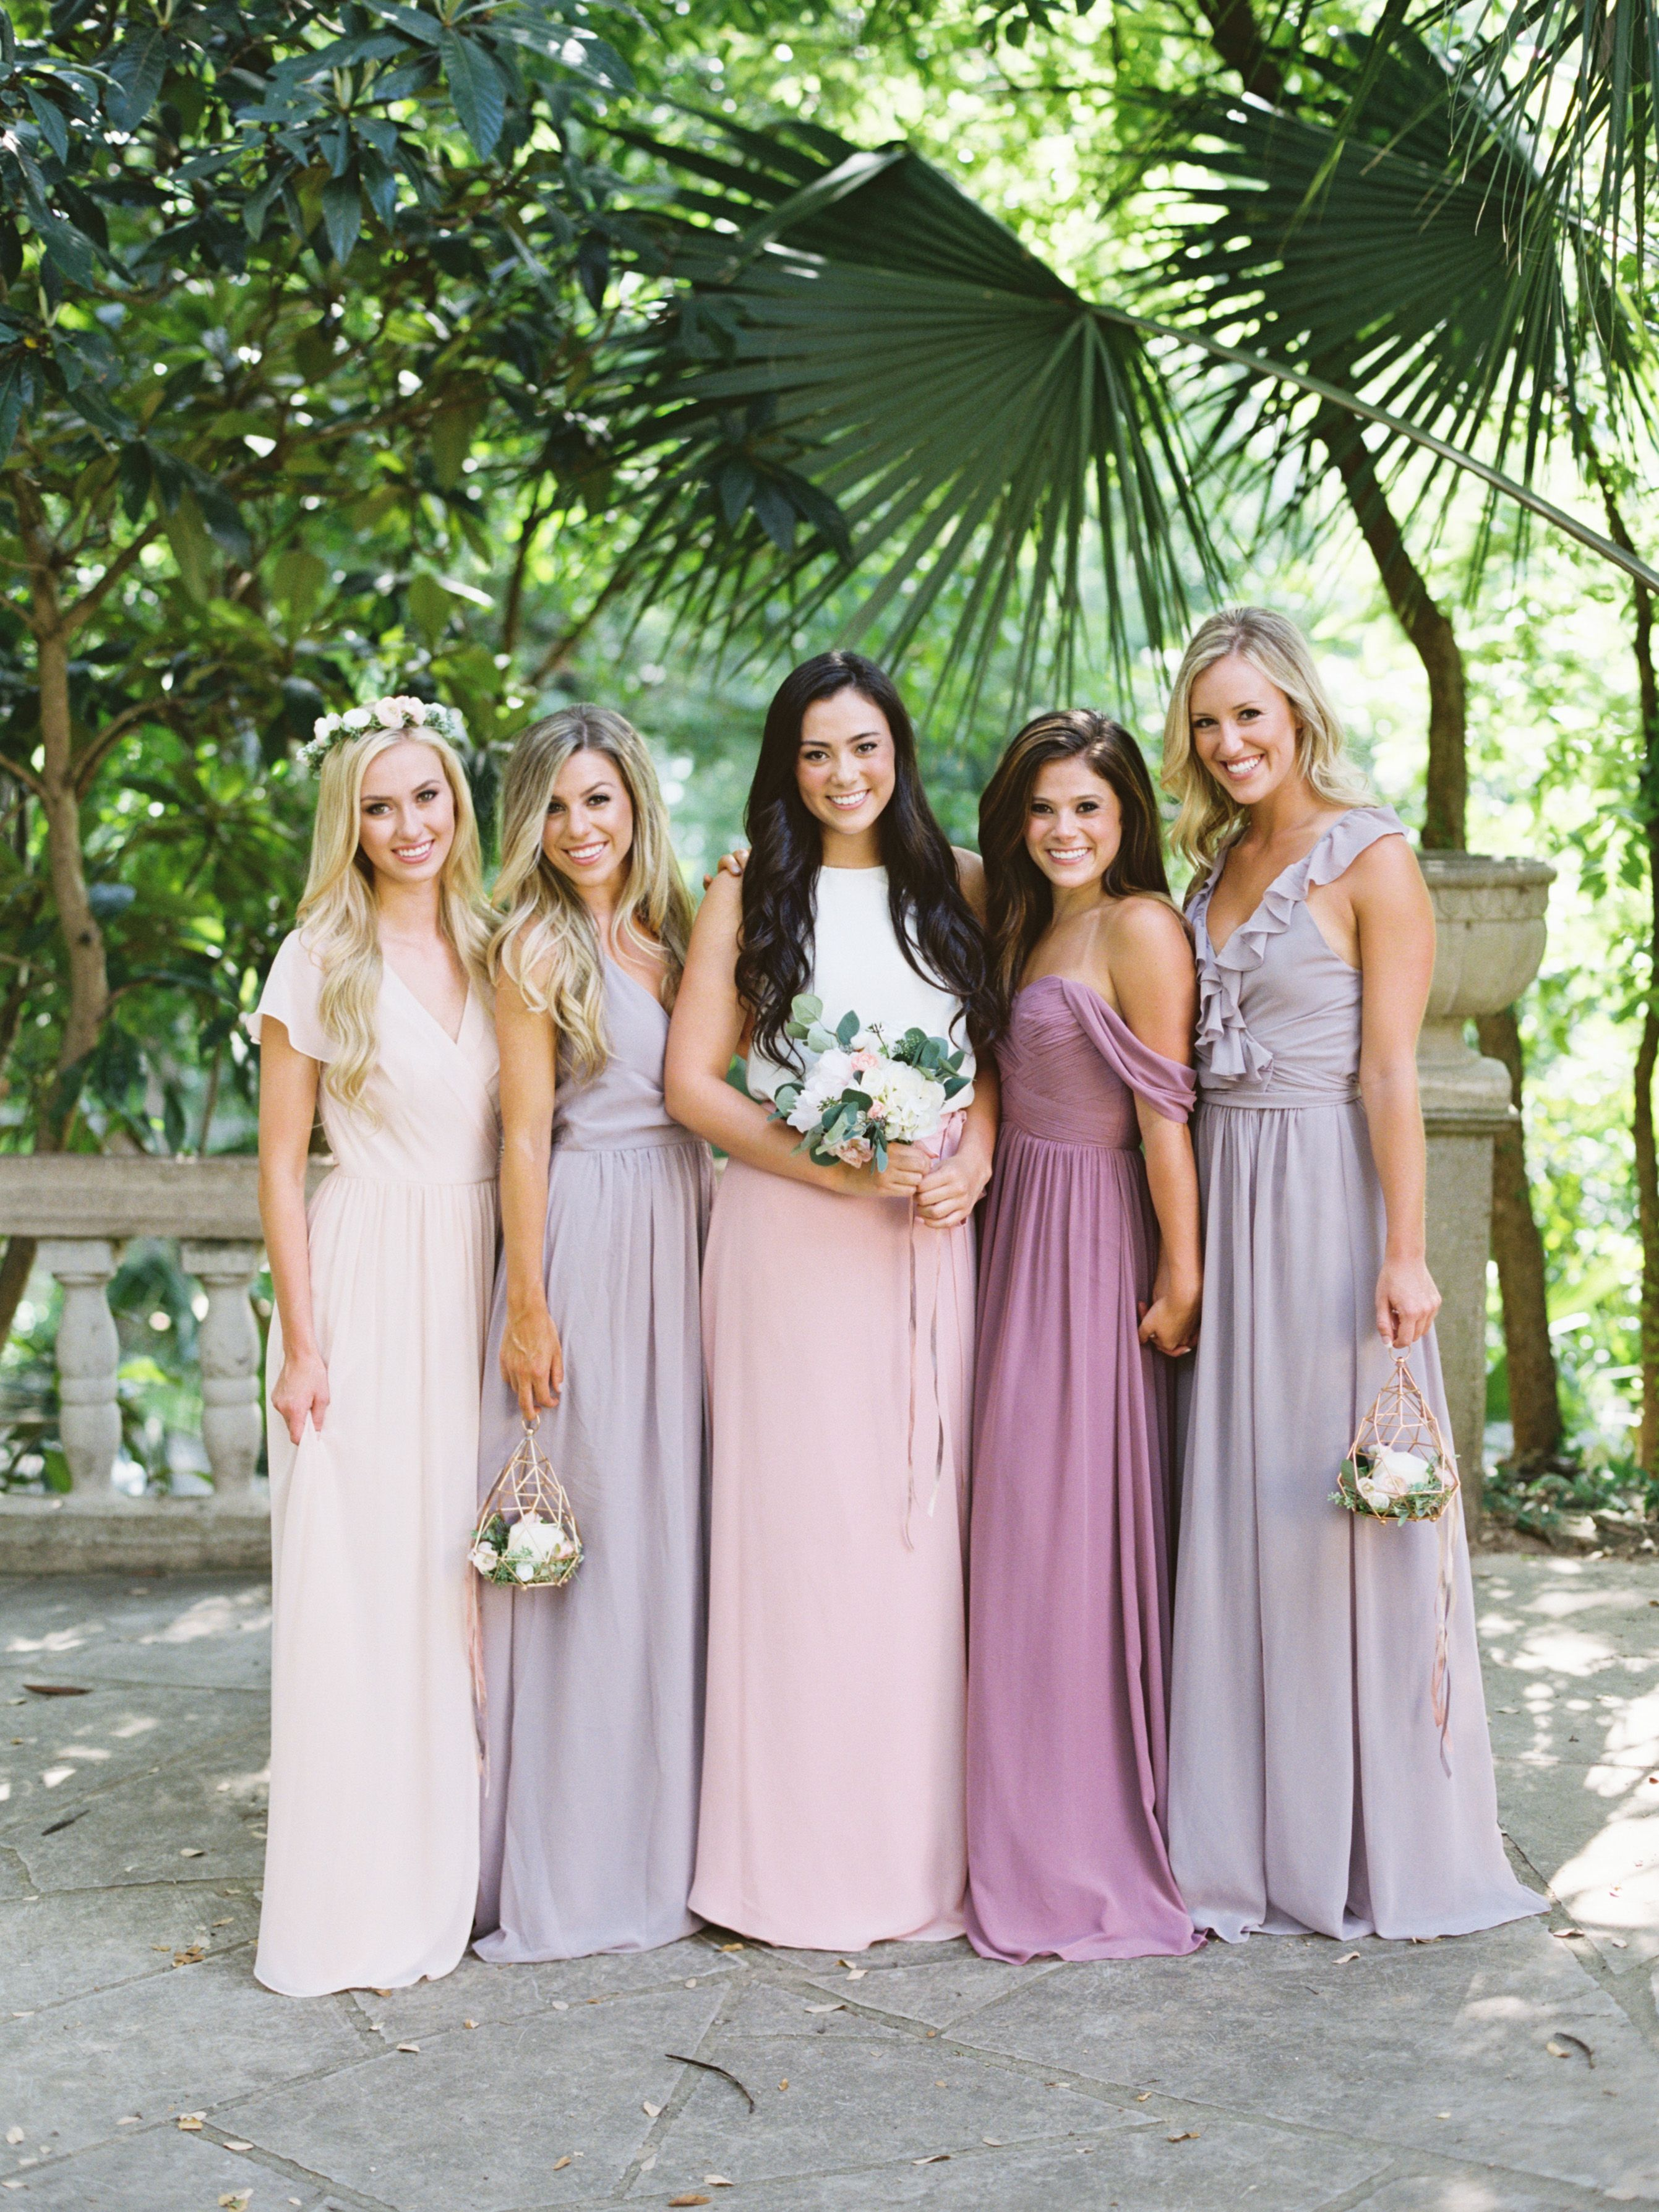 Blushes Pinks Neutrals Chiffon Color Story By Revelry Mix And Match Bridesmaids Dresses Separates